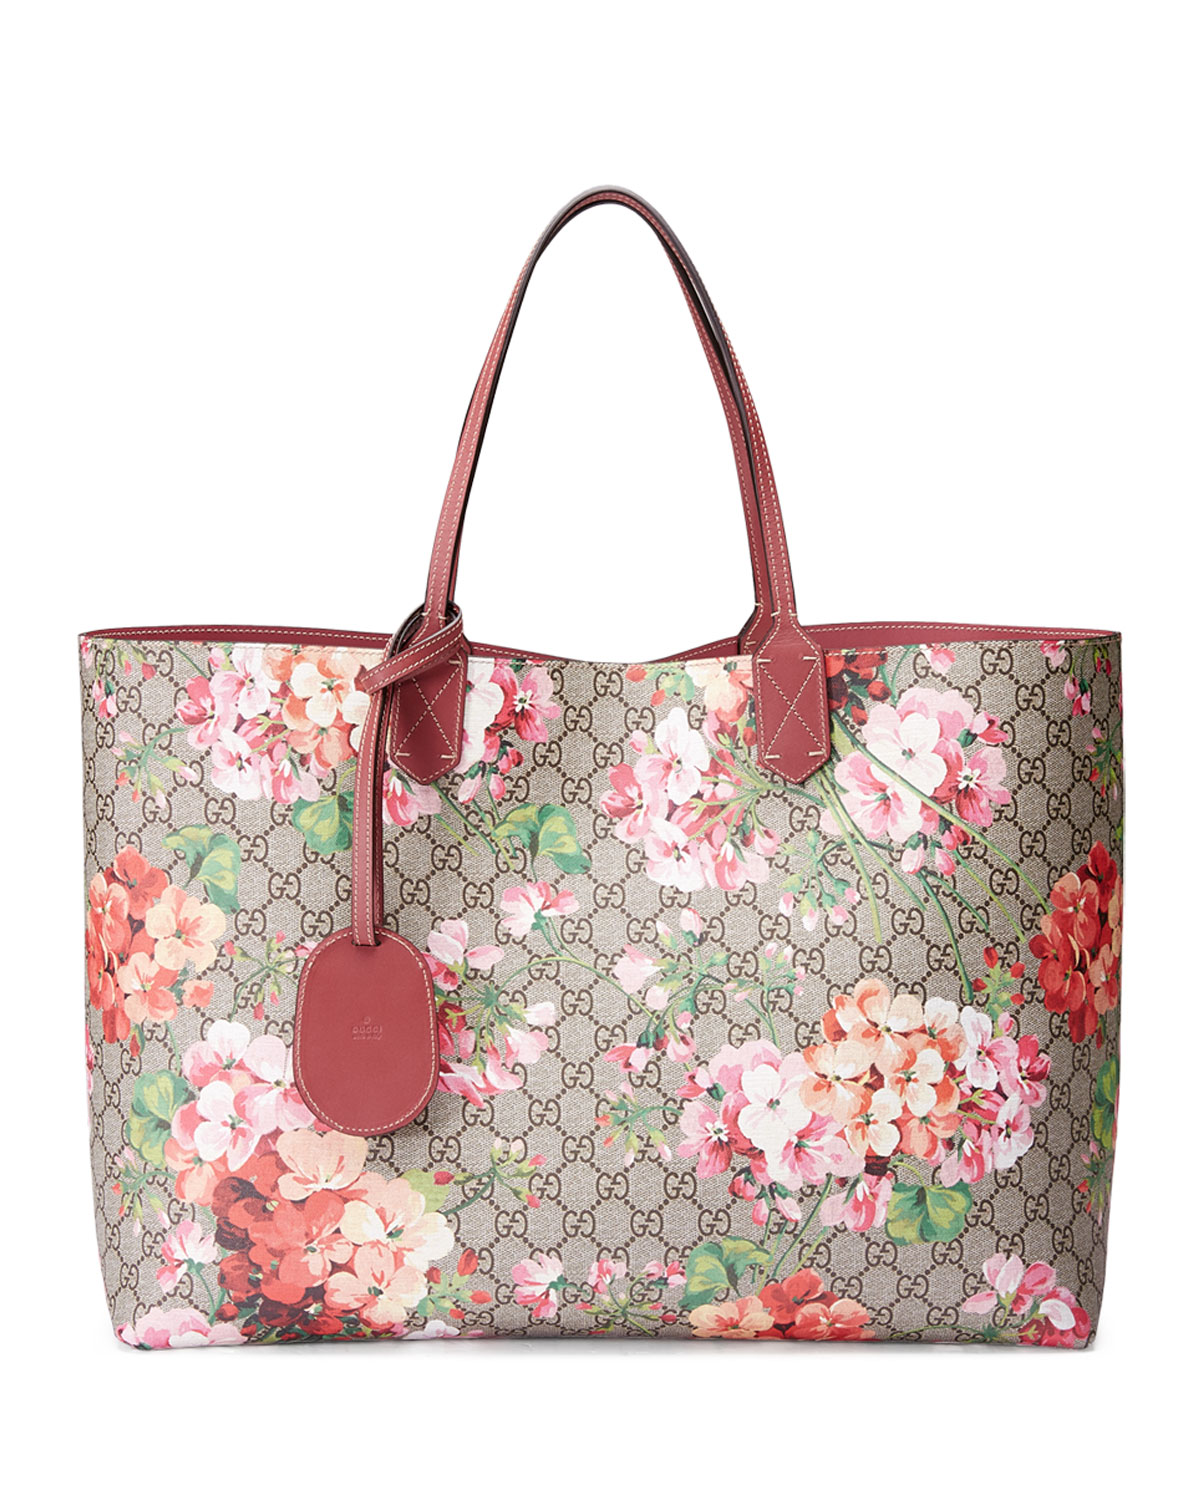 Gg Blooms Large Reversible Leather Tote Bag Multicolor